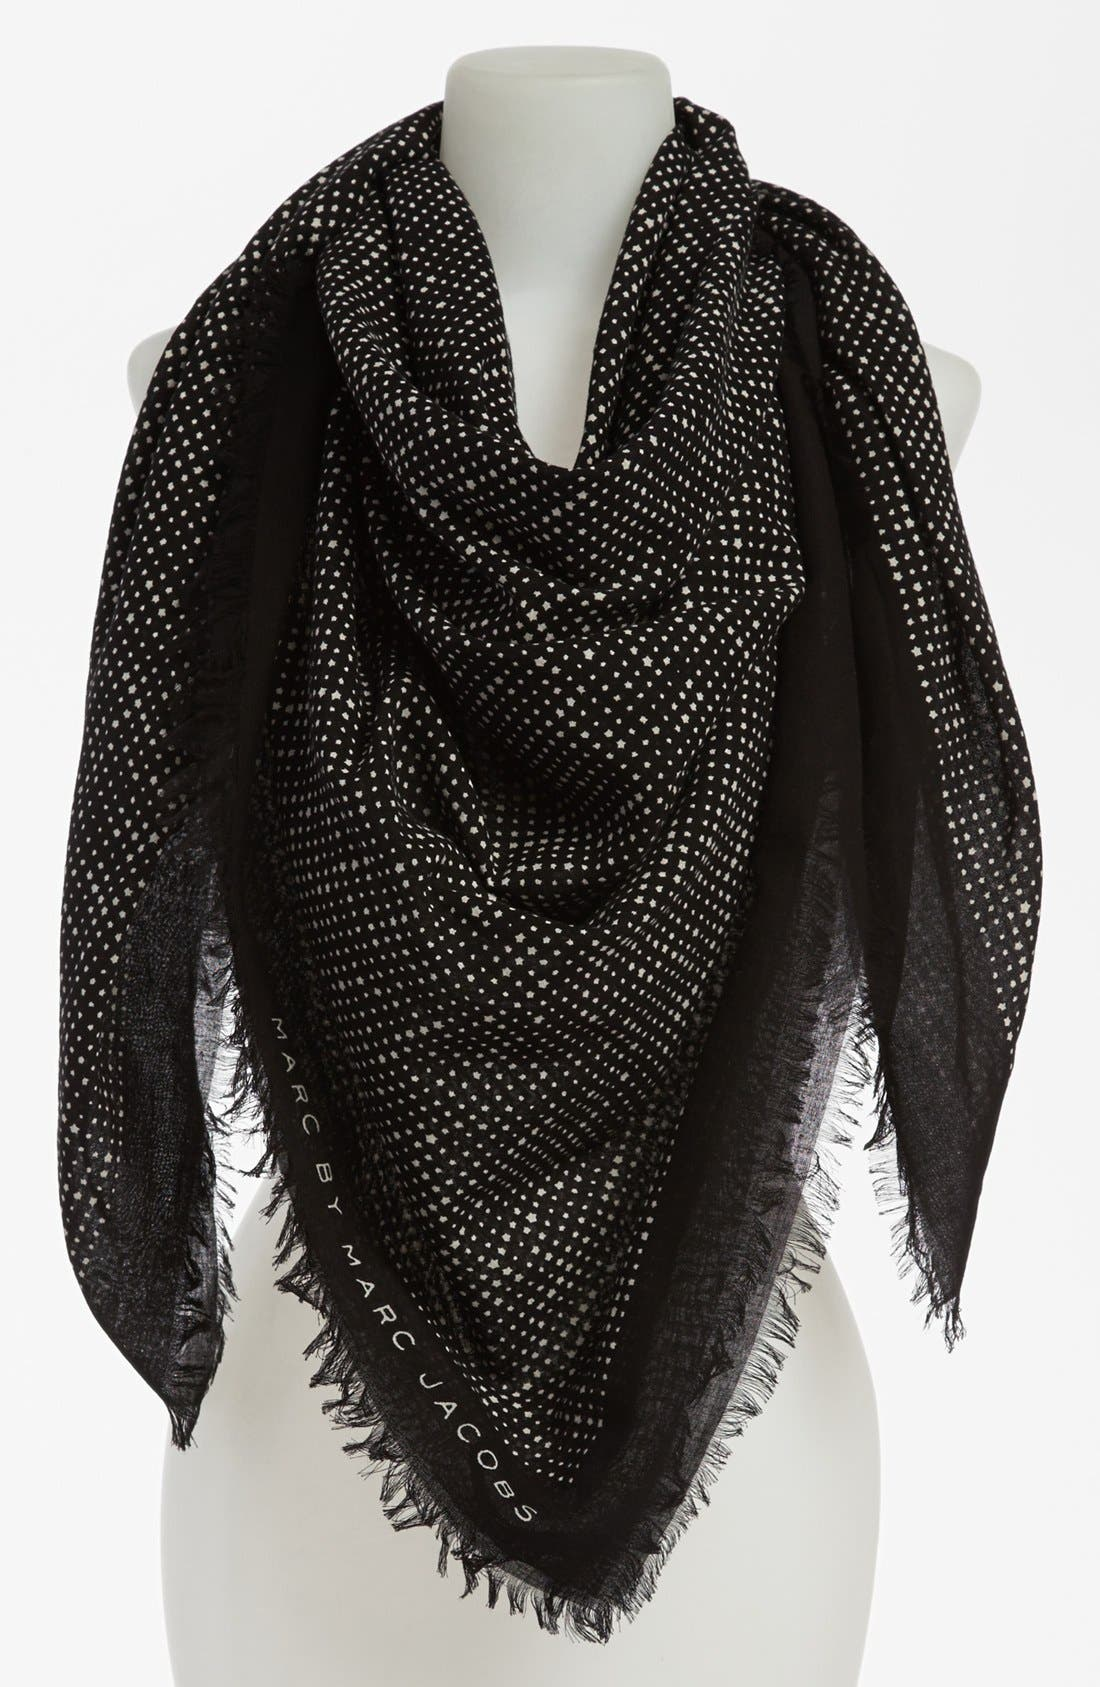 Alternate Image 1 Selected - MARC BY MARC JACOBS 'Reluctant Stars' Cotton Scarf